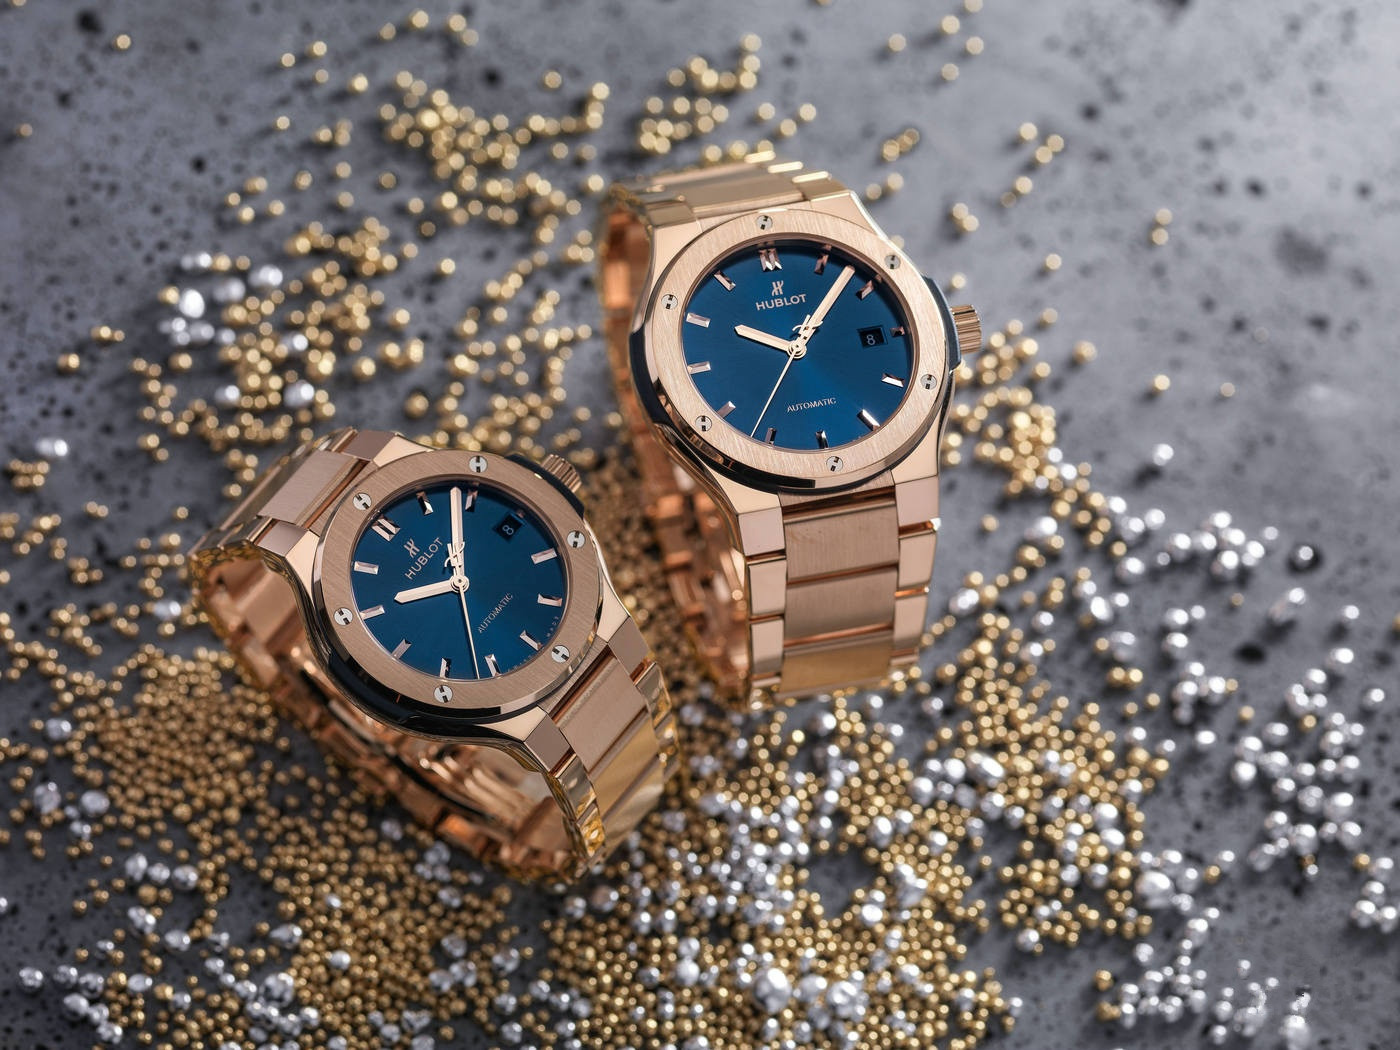 The luxury copy watches are made from rose gold.